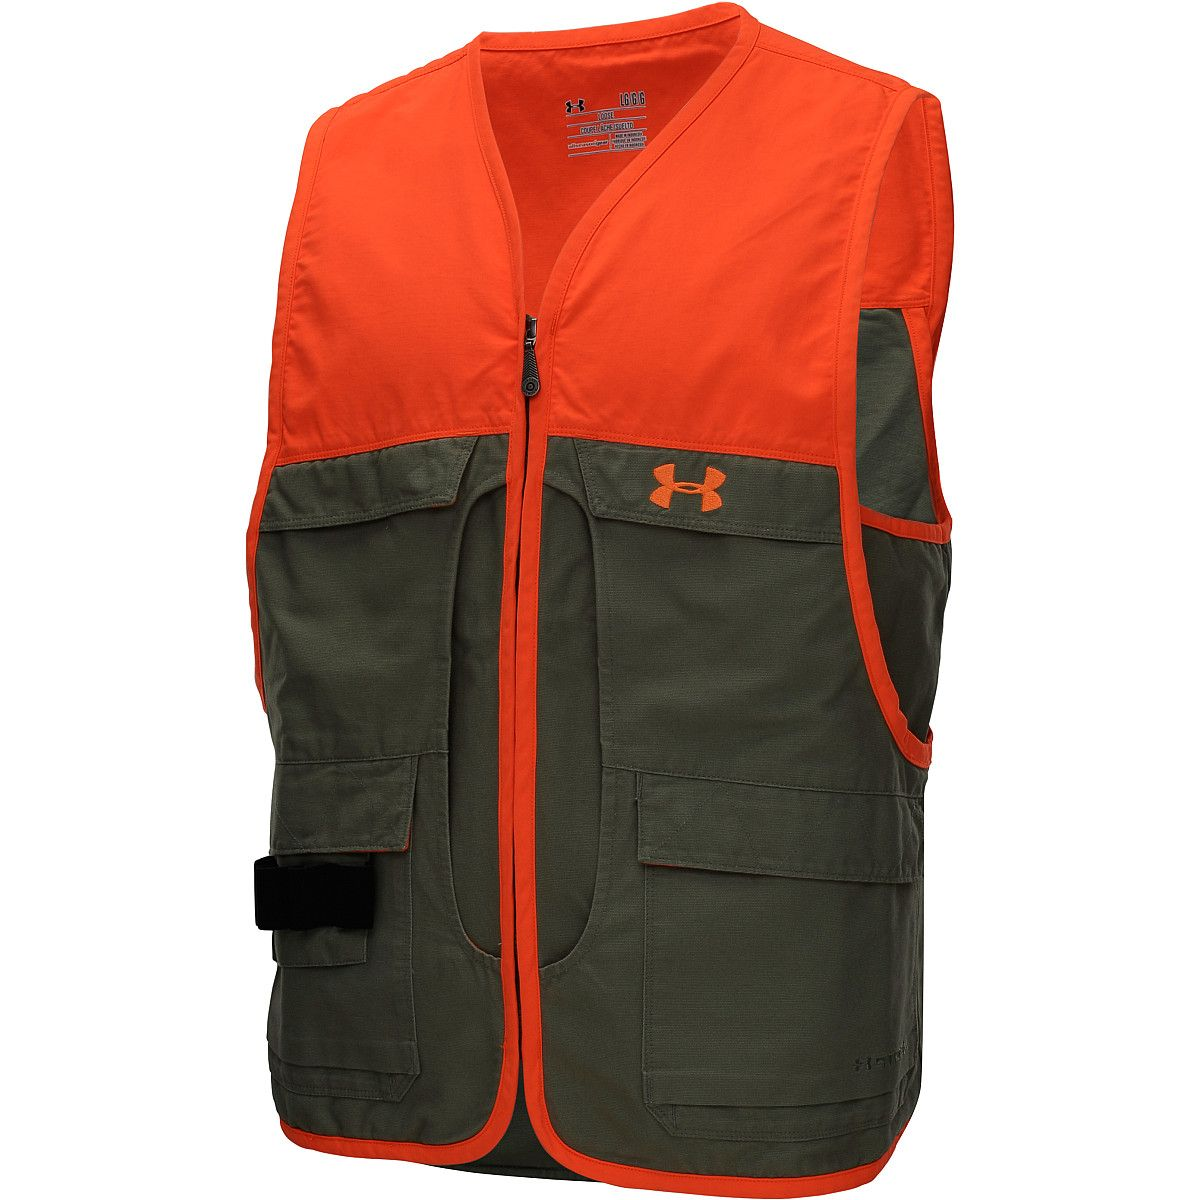 Designed for upland hunting, the UNDER ARMOUR® men's Prey